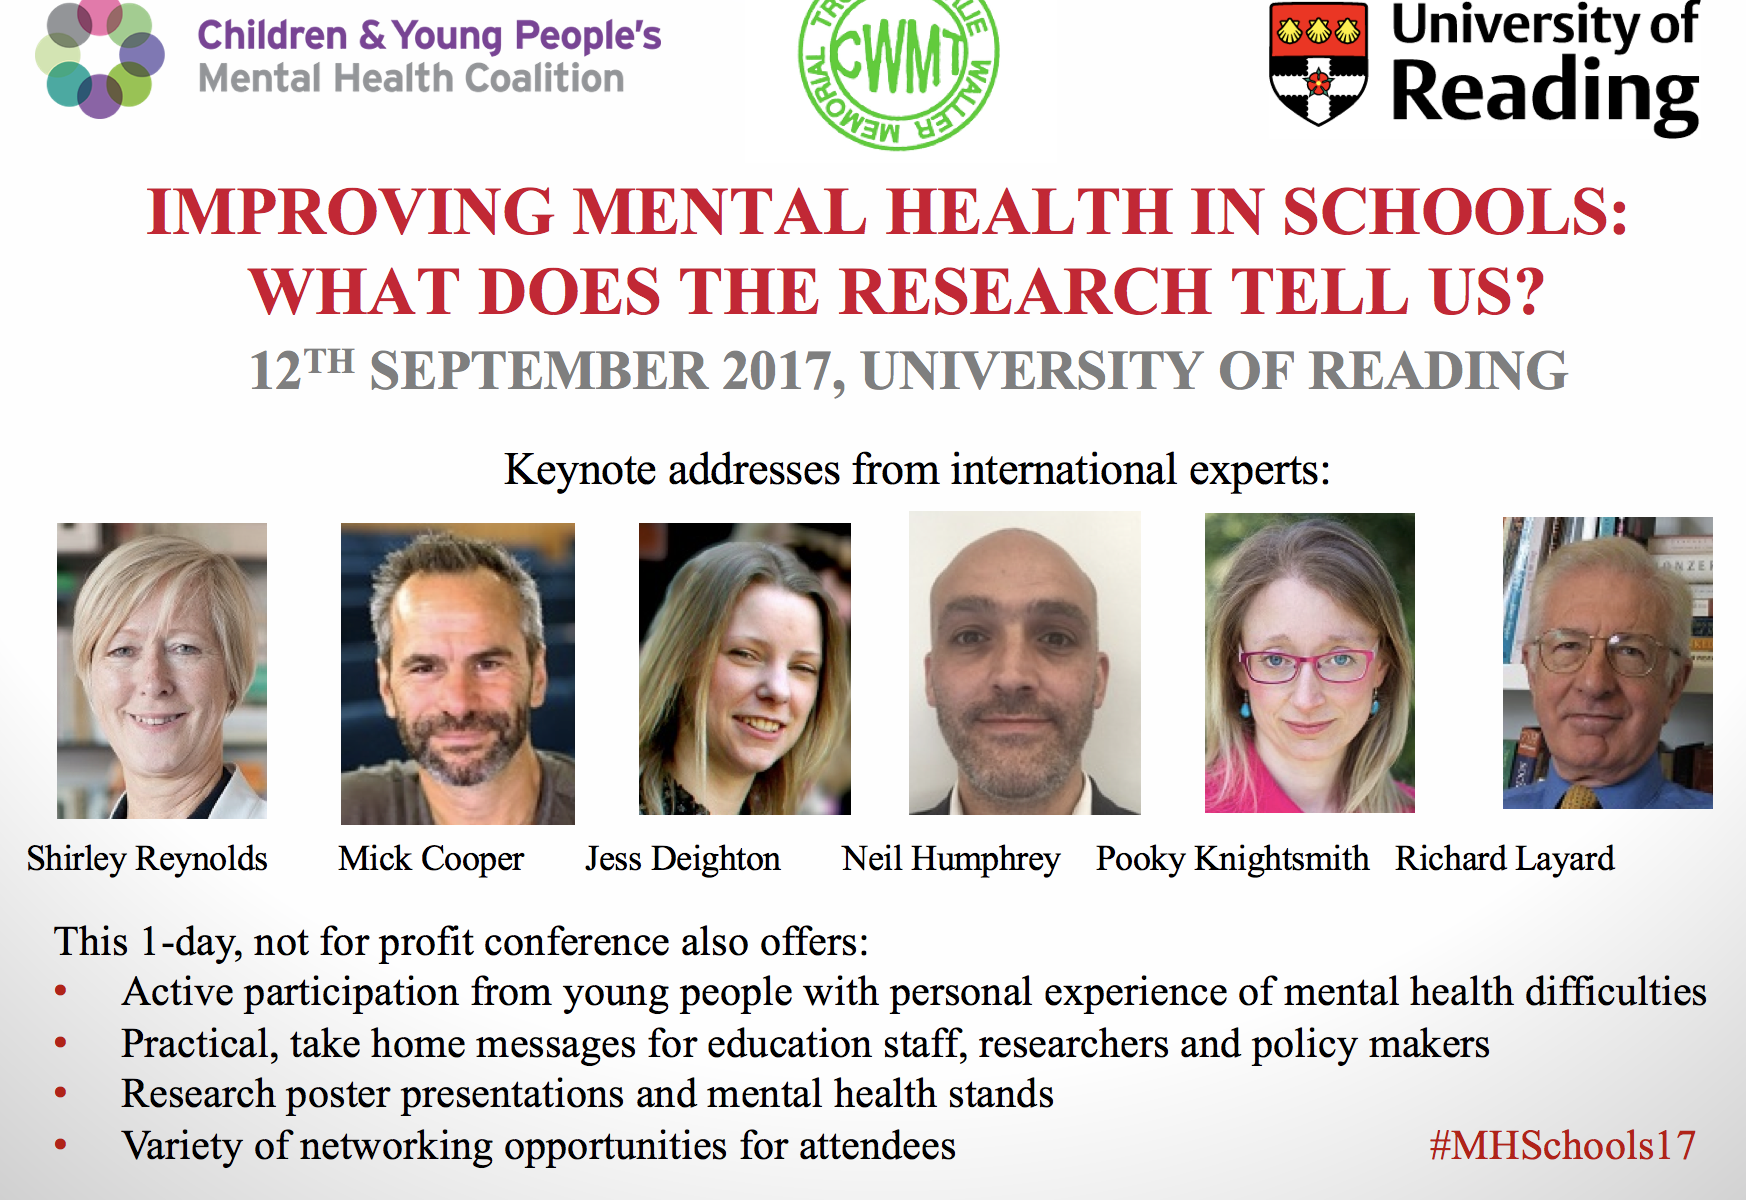 #MHschools17 Mental health in schools, Reading, Sep 2017